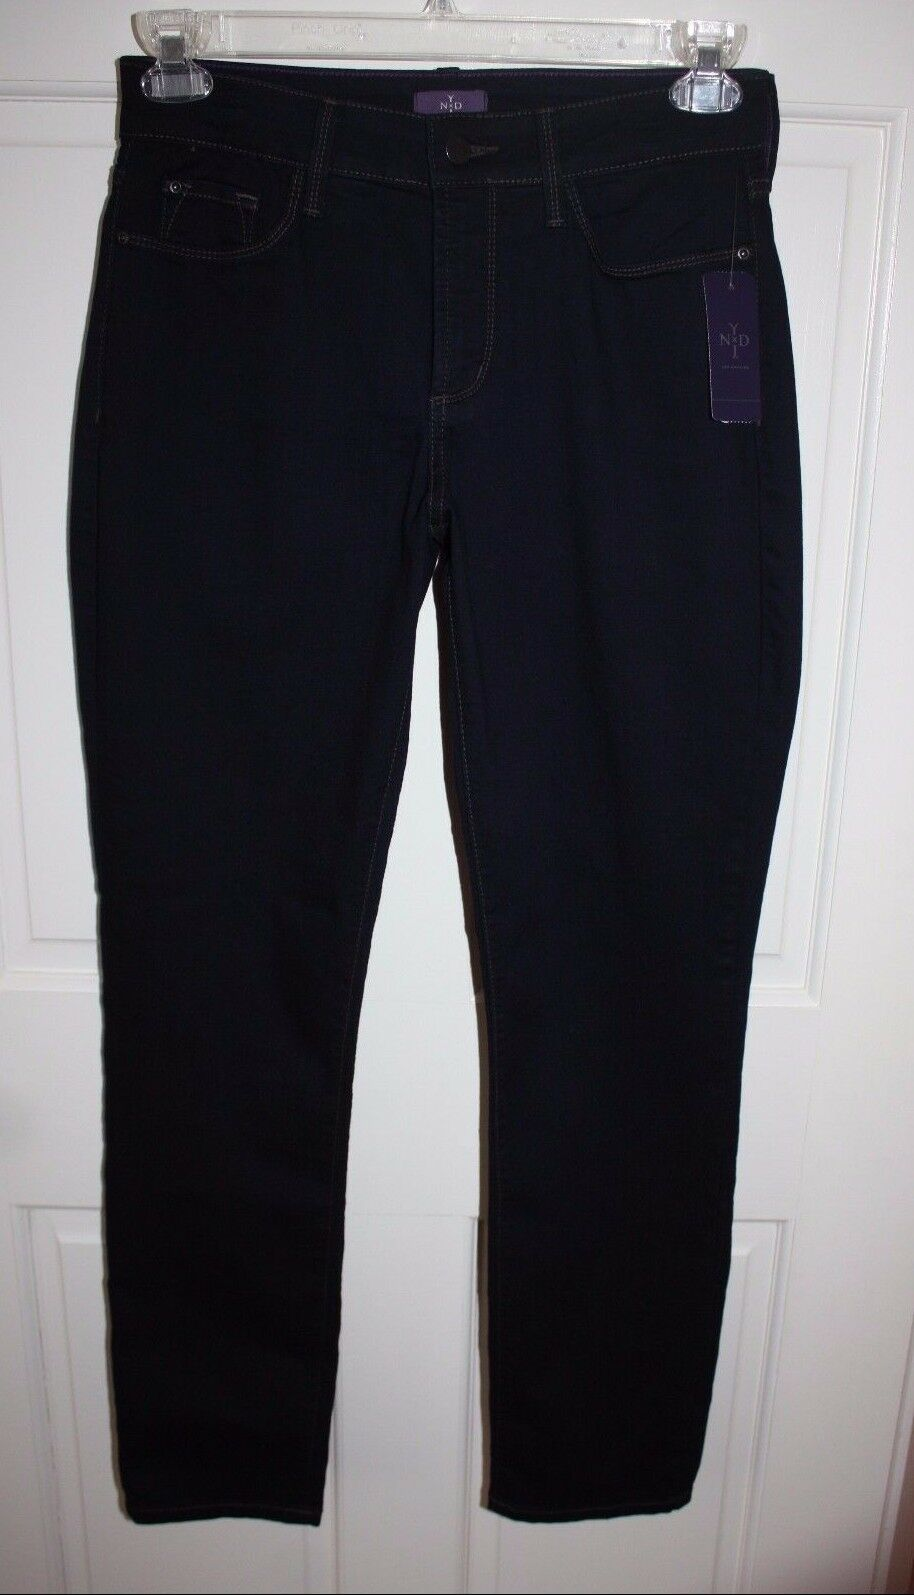 NWT Womens NYDJ Not Your Daughters Jeans Dark bluee Jeans Size 8